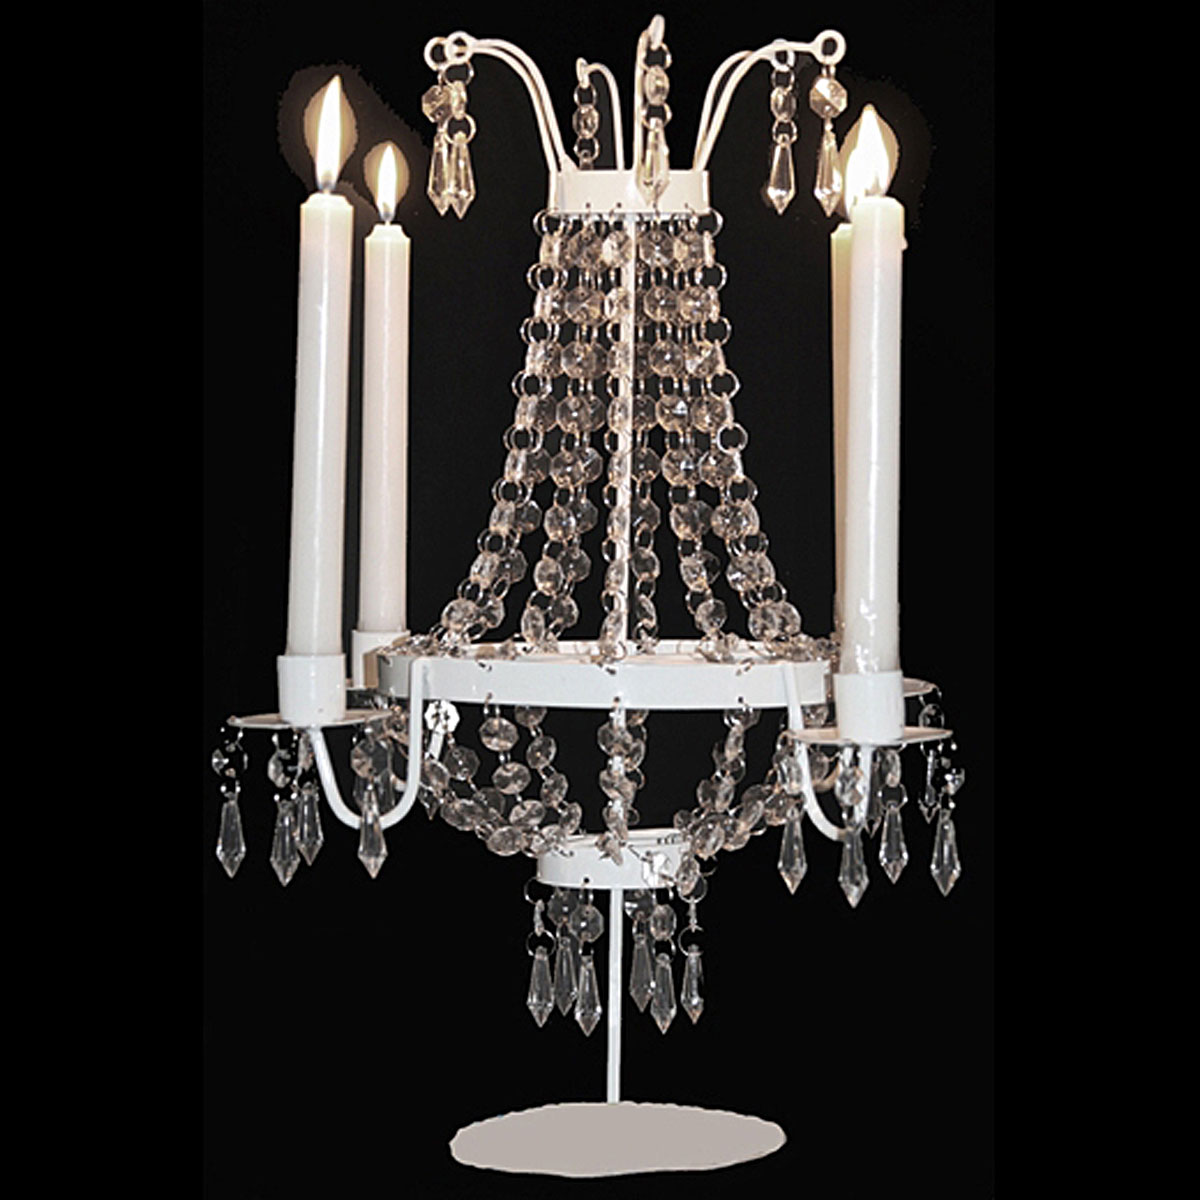 Candle Chandelier Centerpiece : Decorative white candle holder chandelier wedding